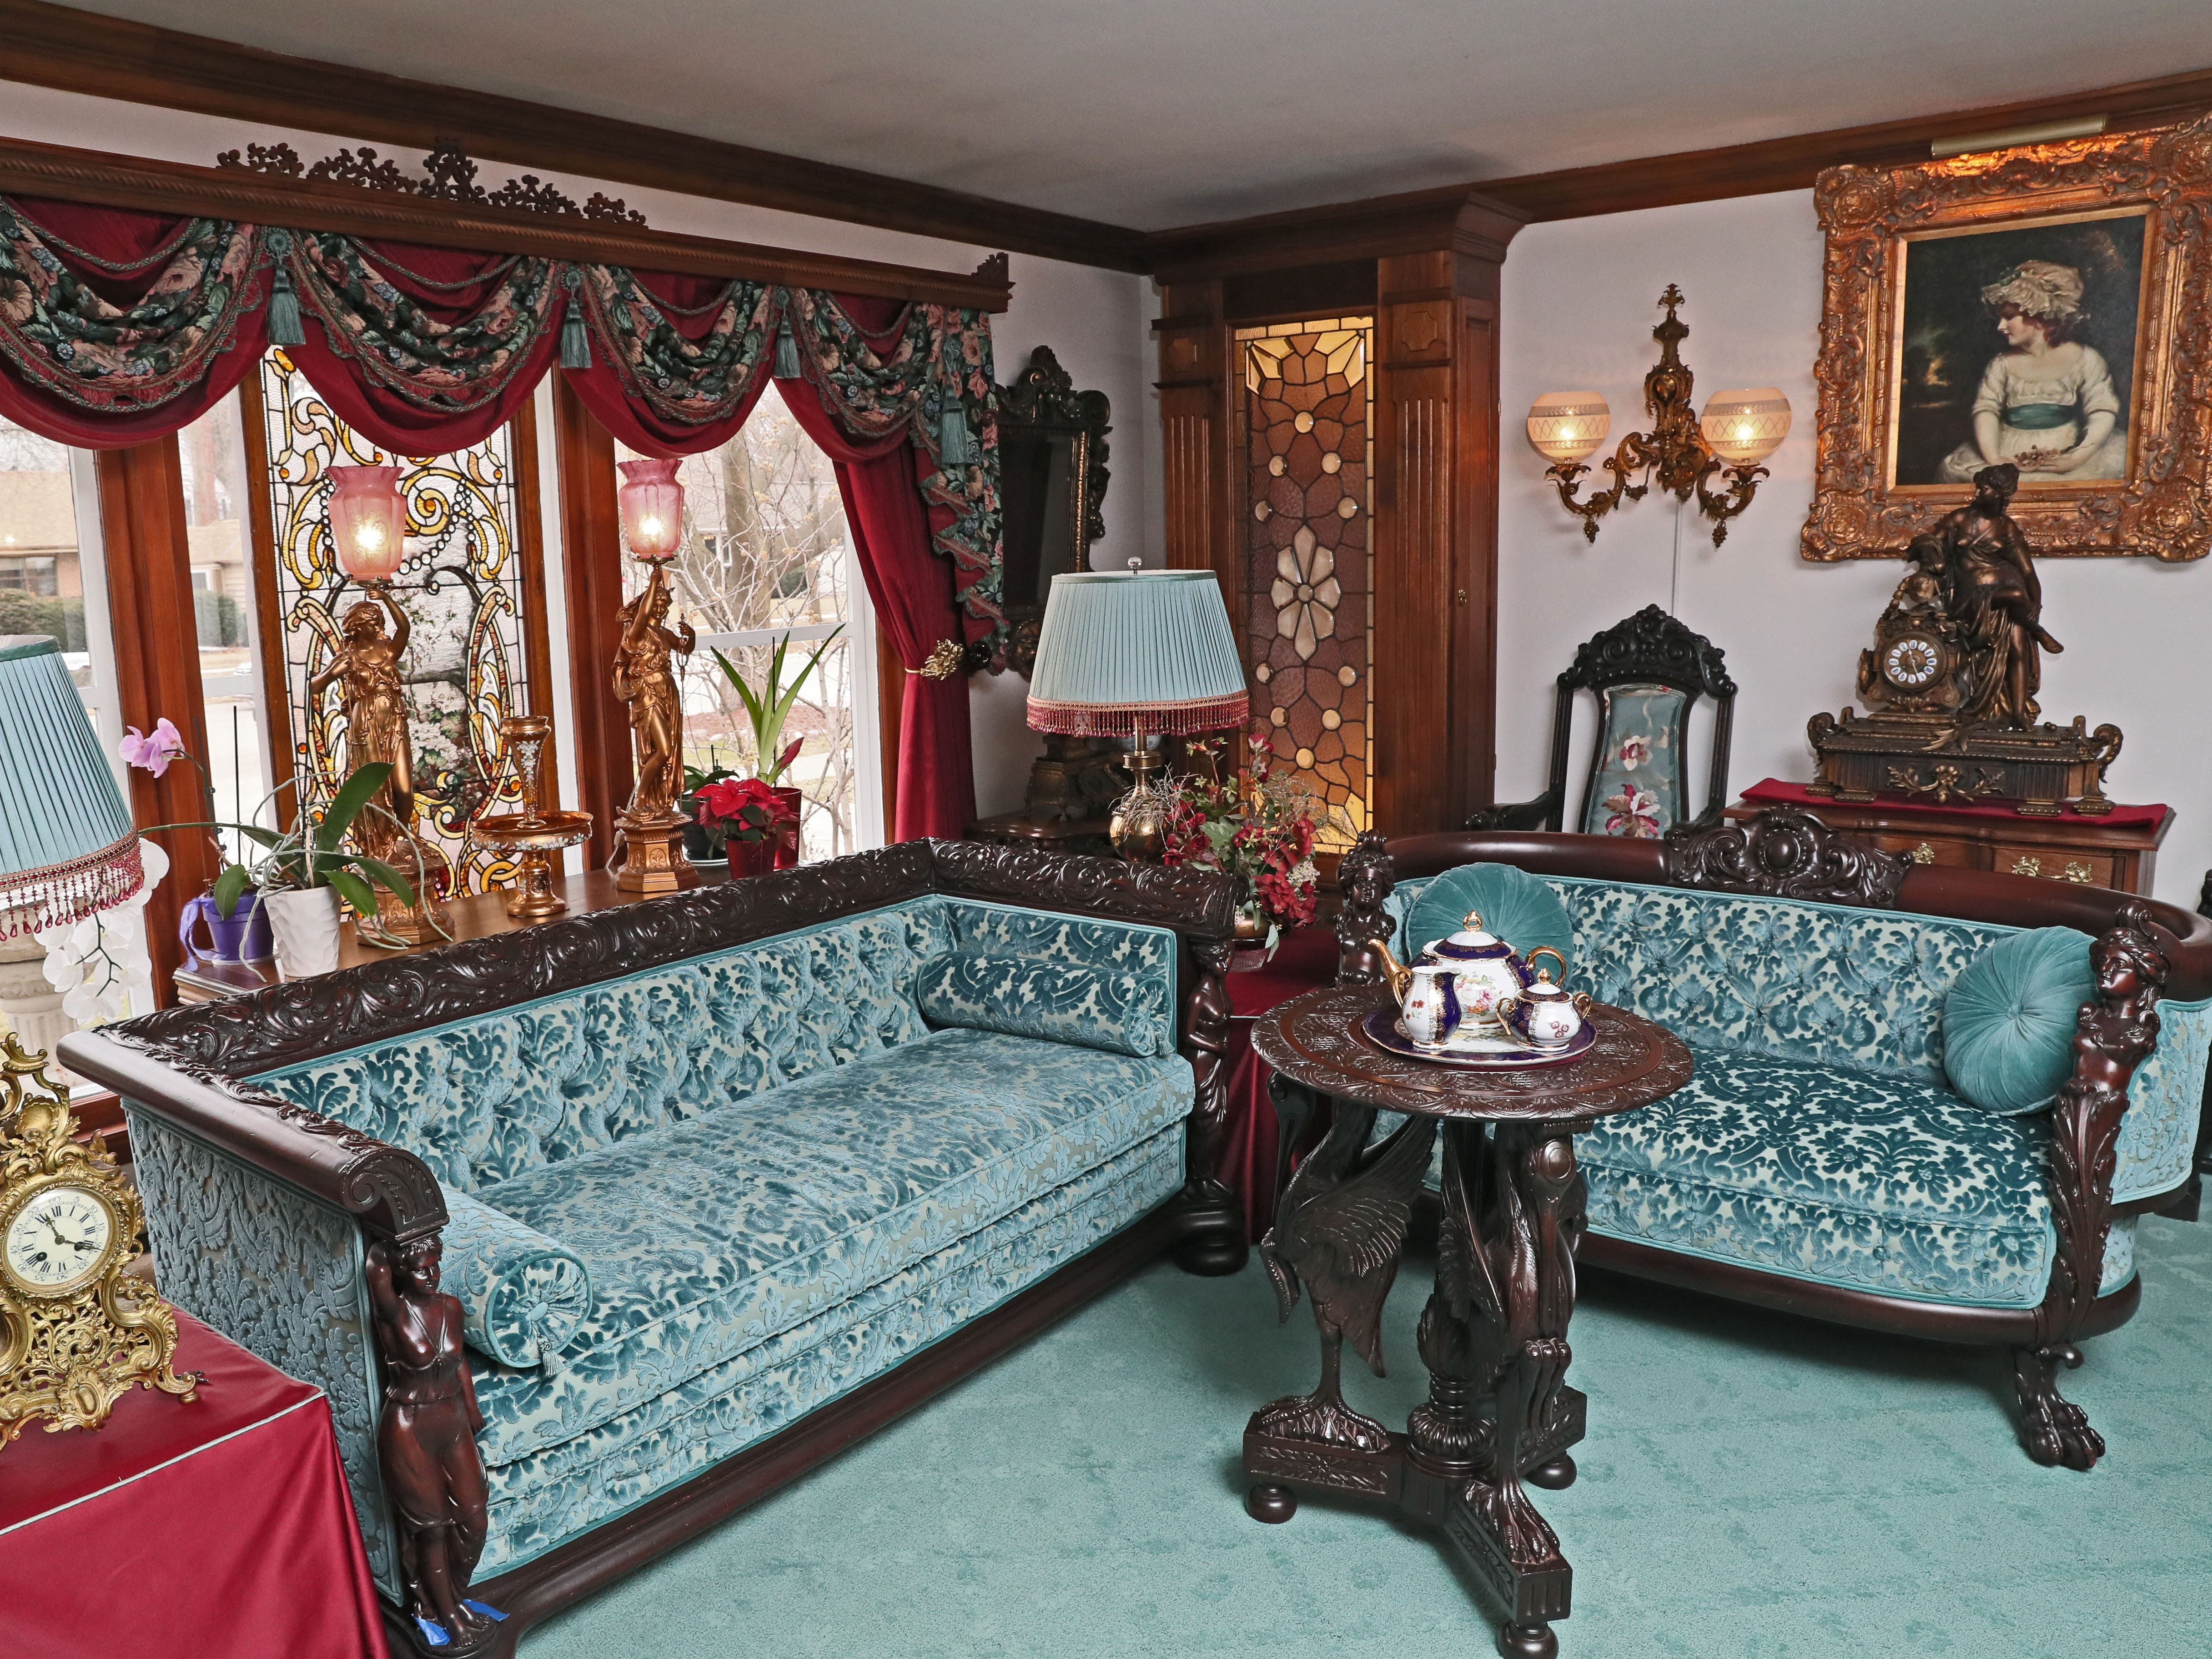 The living room features mahogany furniture reupholstered in teal sculpted velvet.